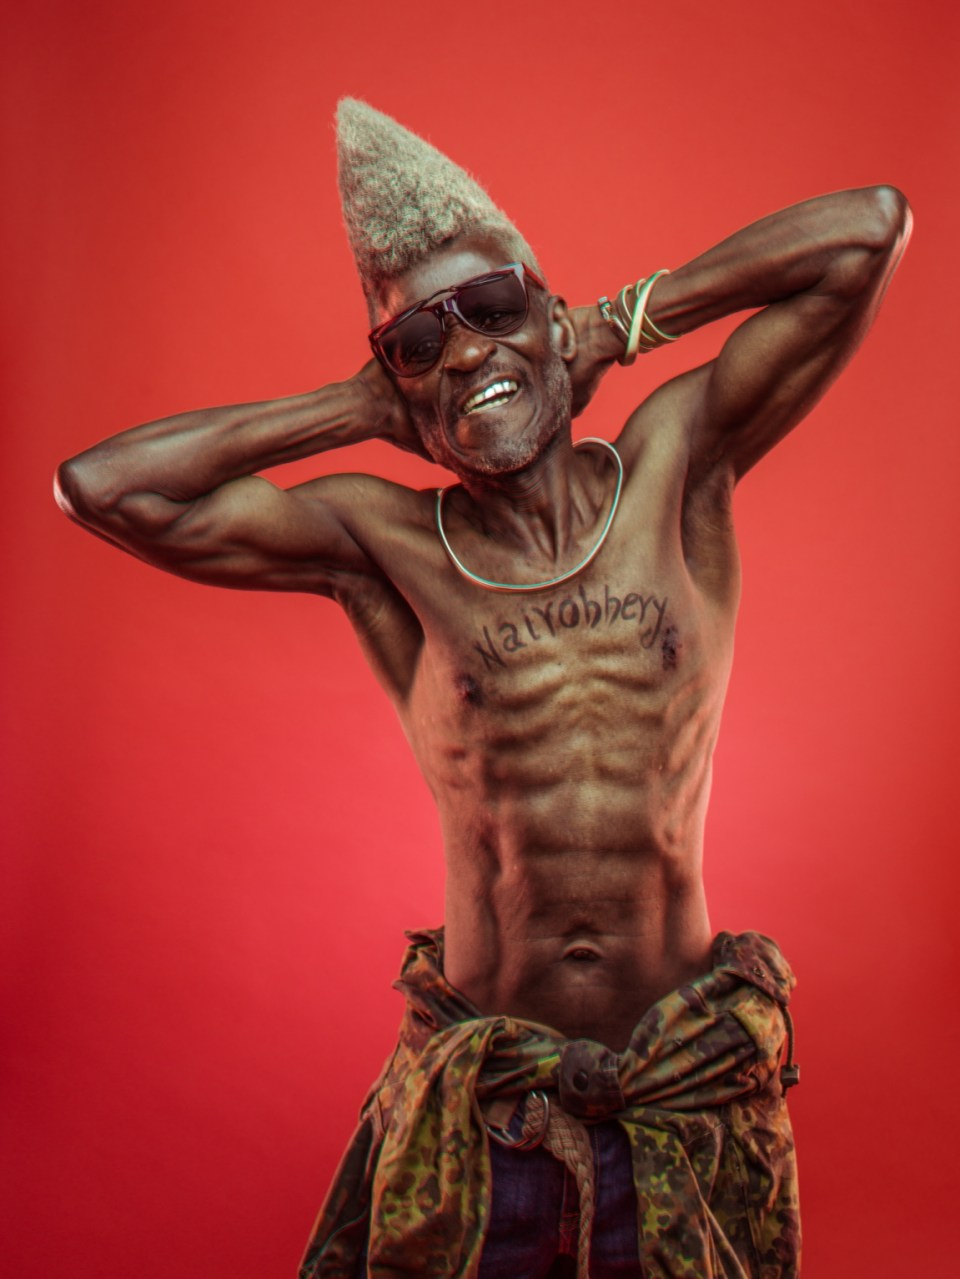 Osbourne Macharia: Watchmen by Day; Hip Hop heads by night photographic project